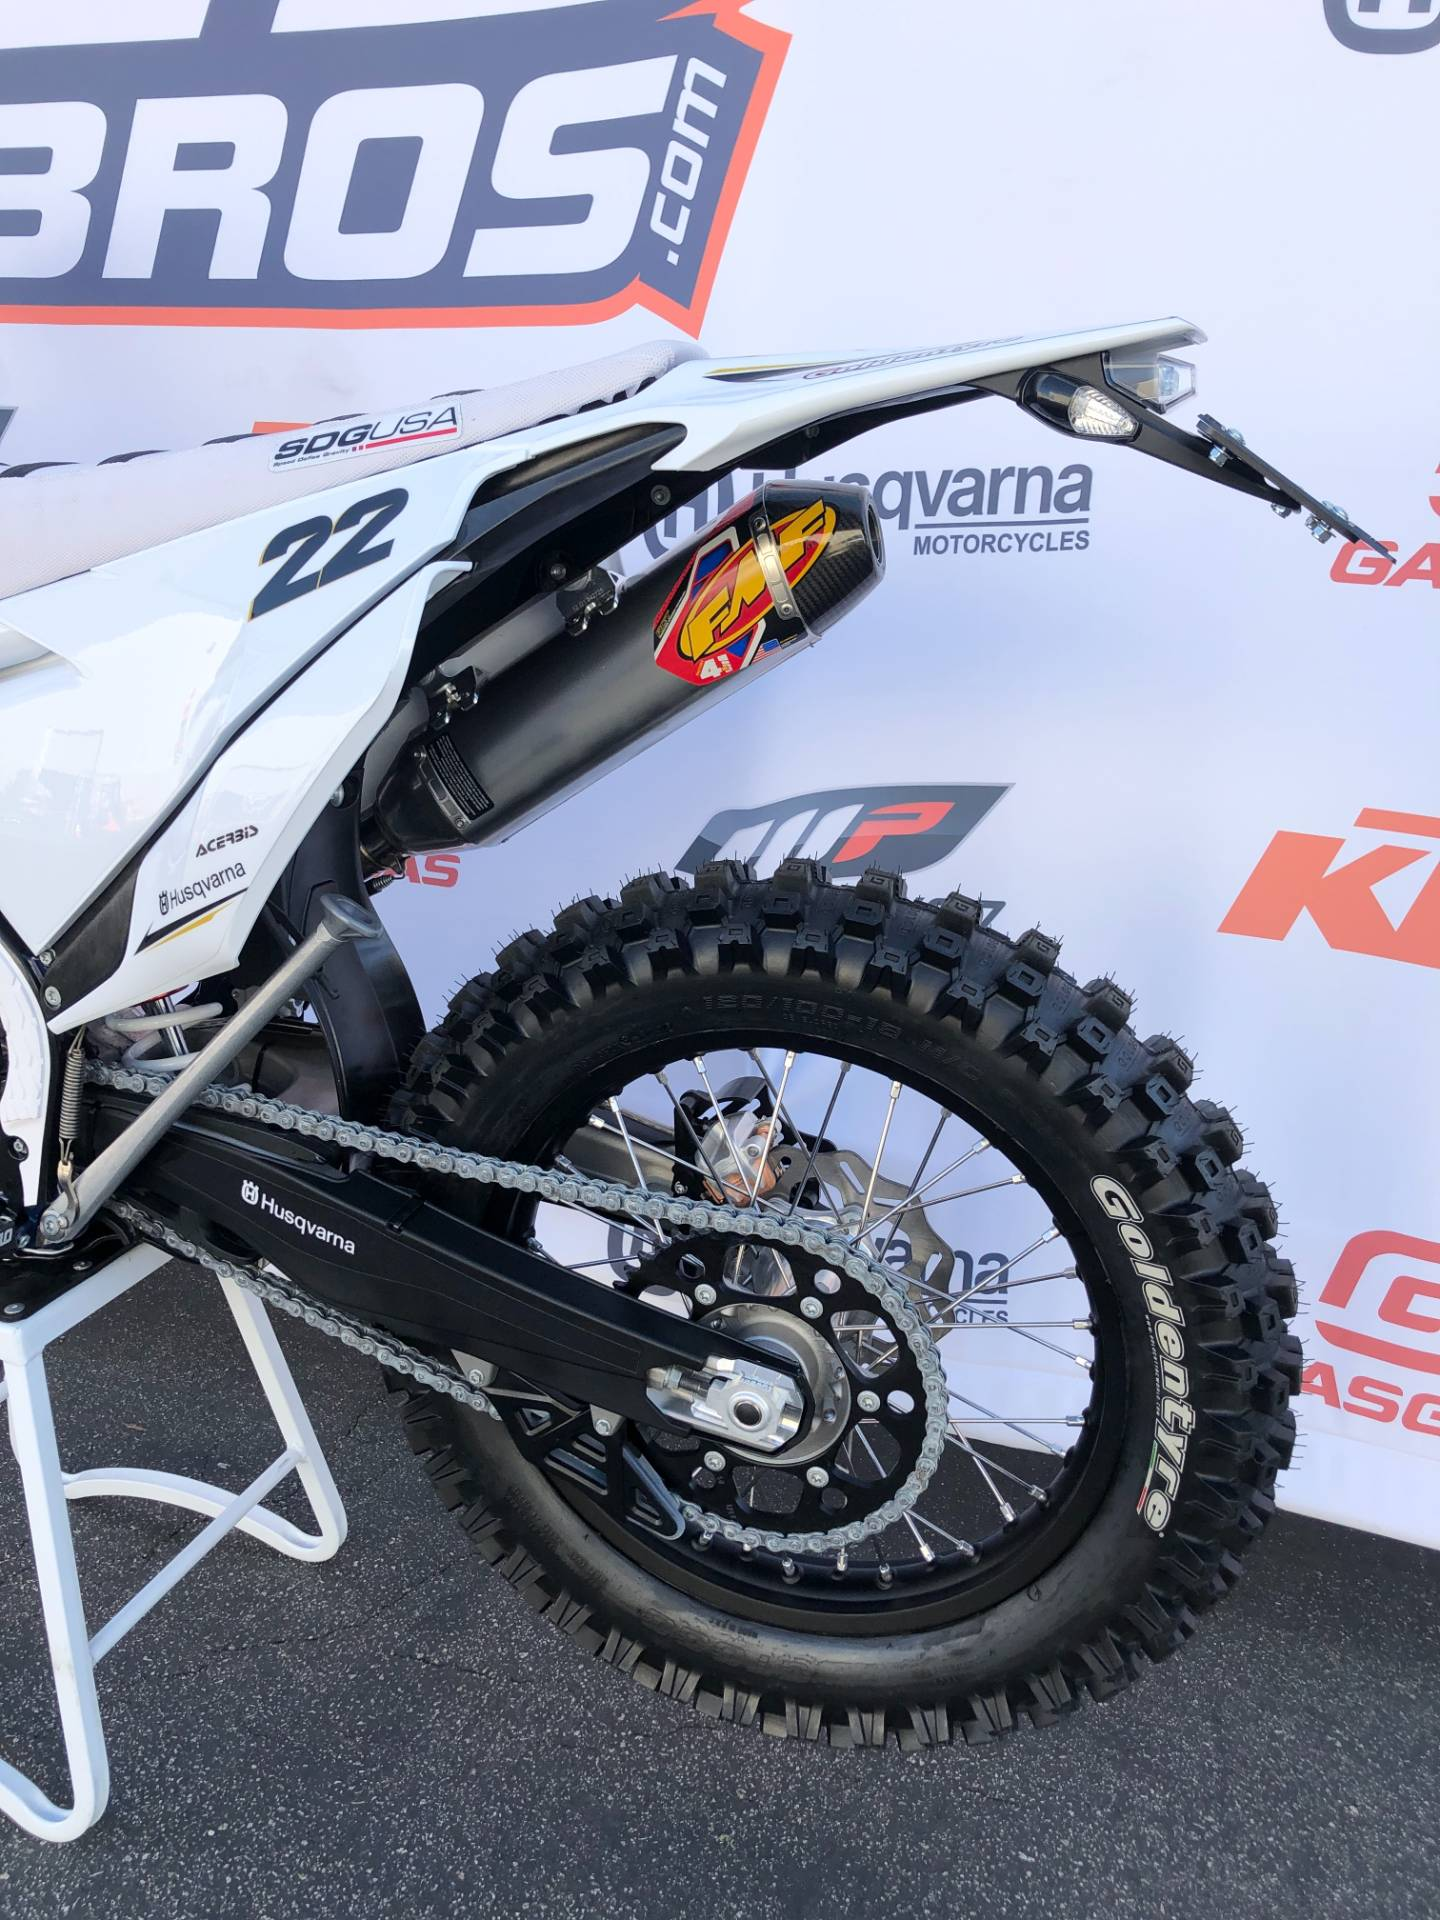 2021 Husqvarna FE 501s in Costa Mesa, California - Photo 12